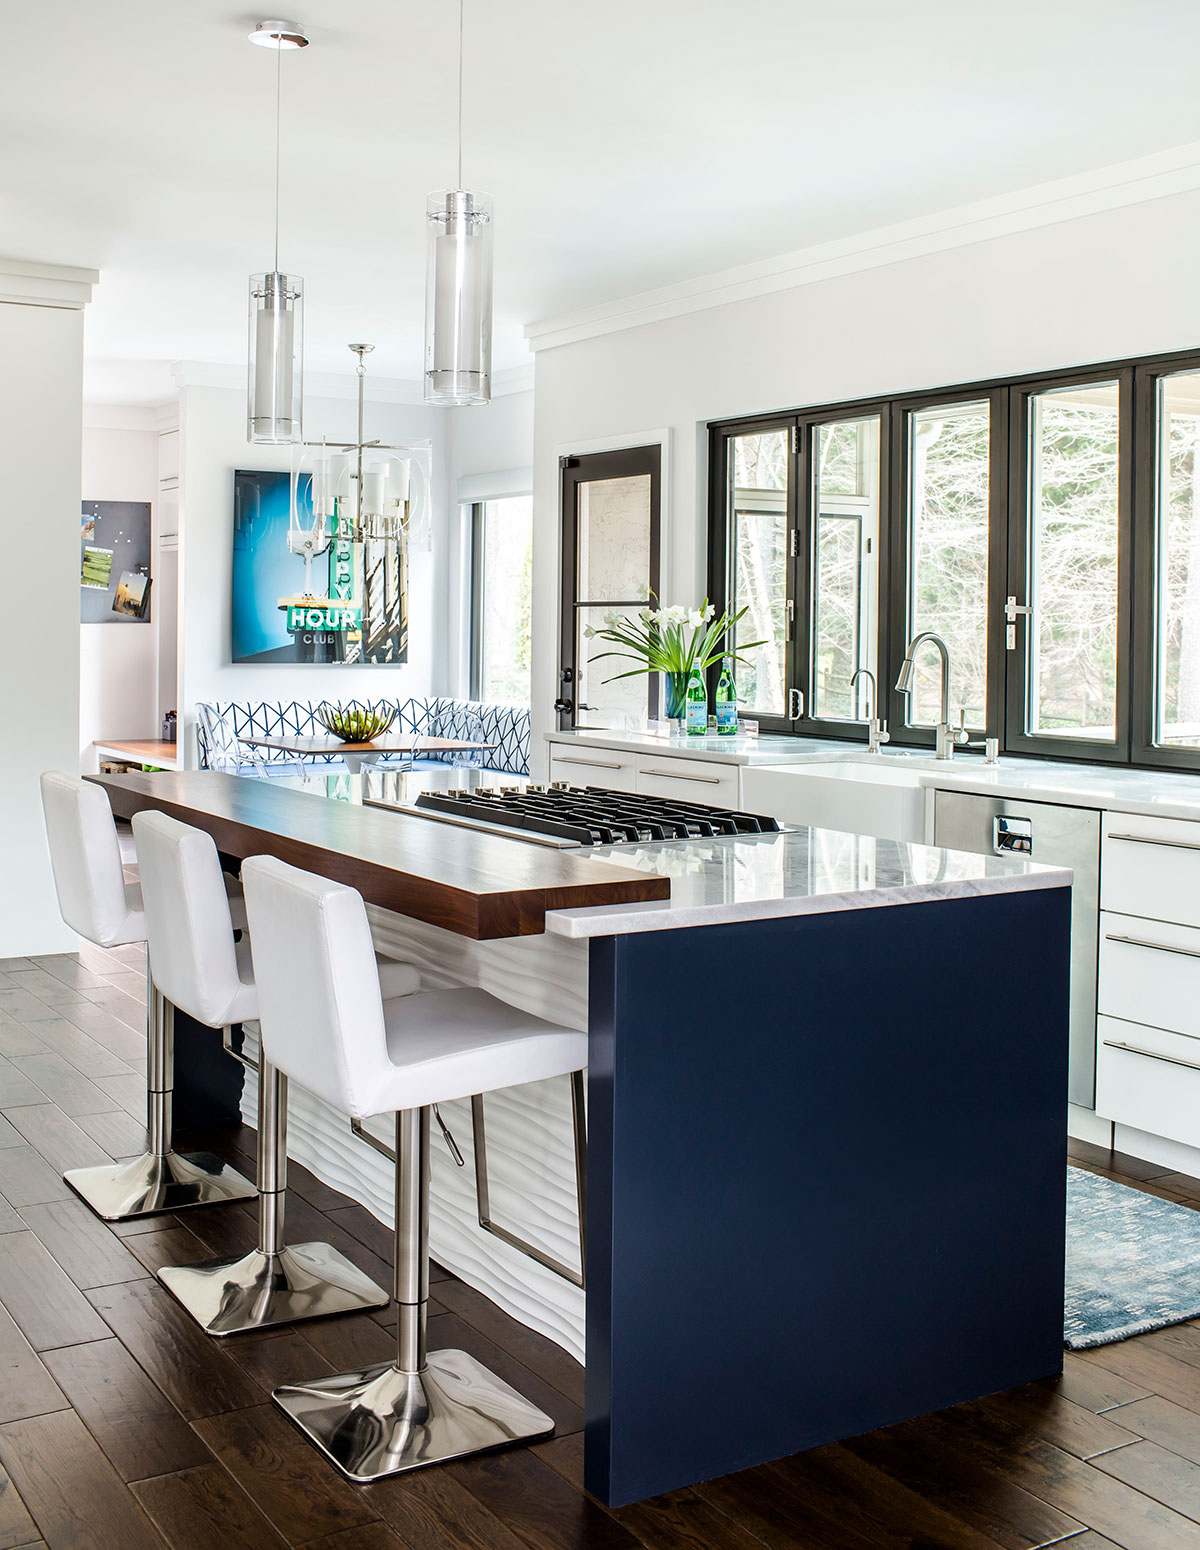 Contemporary kitchen island with gas range and wood counter